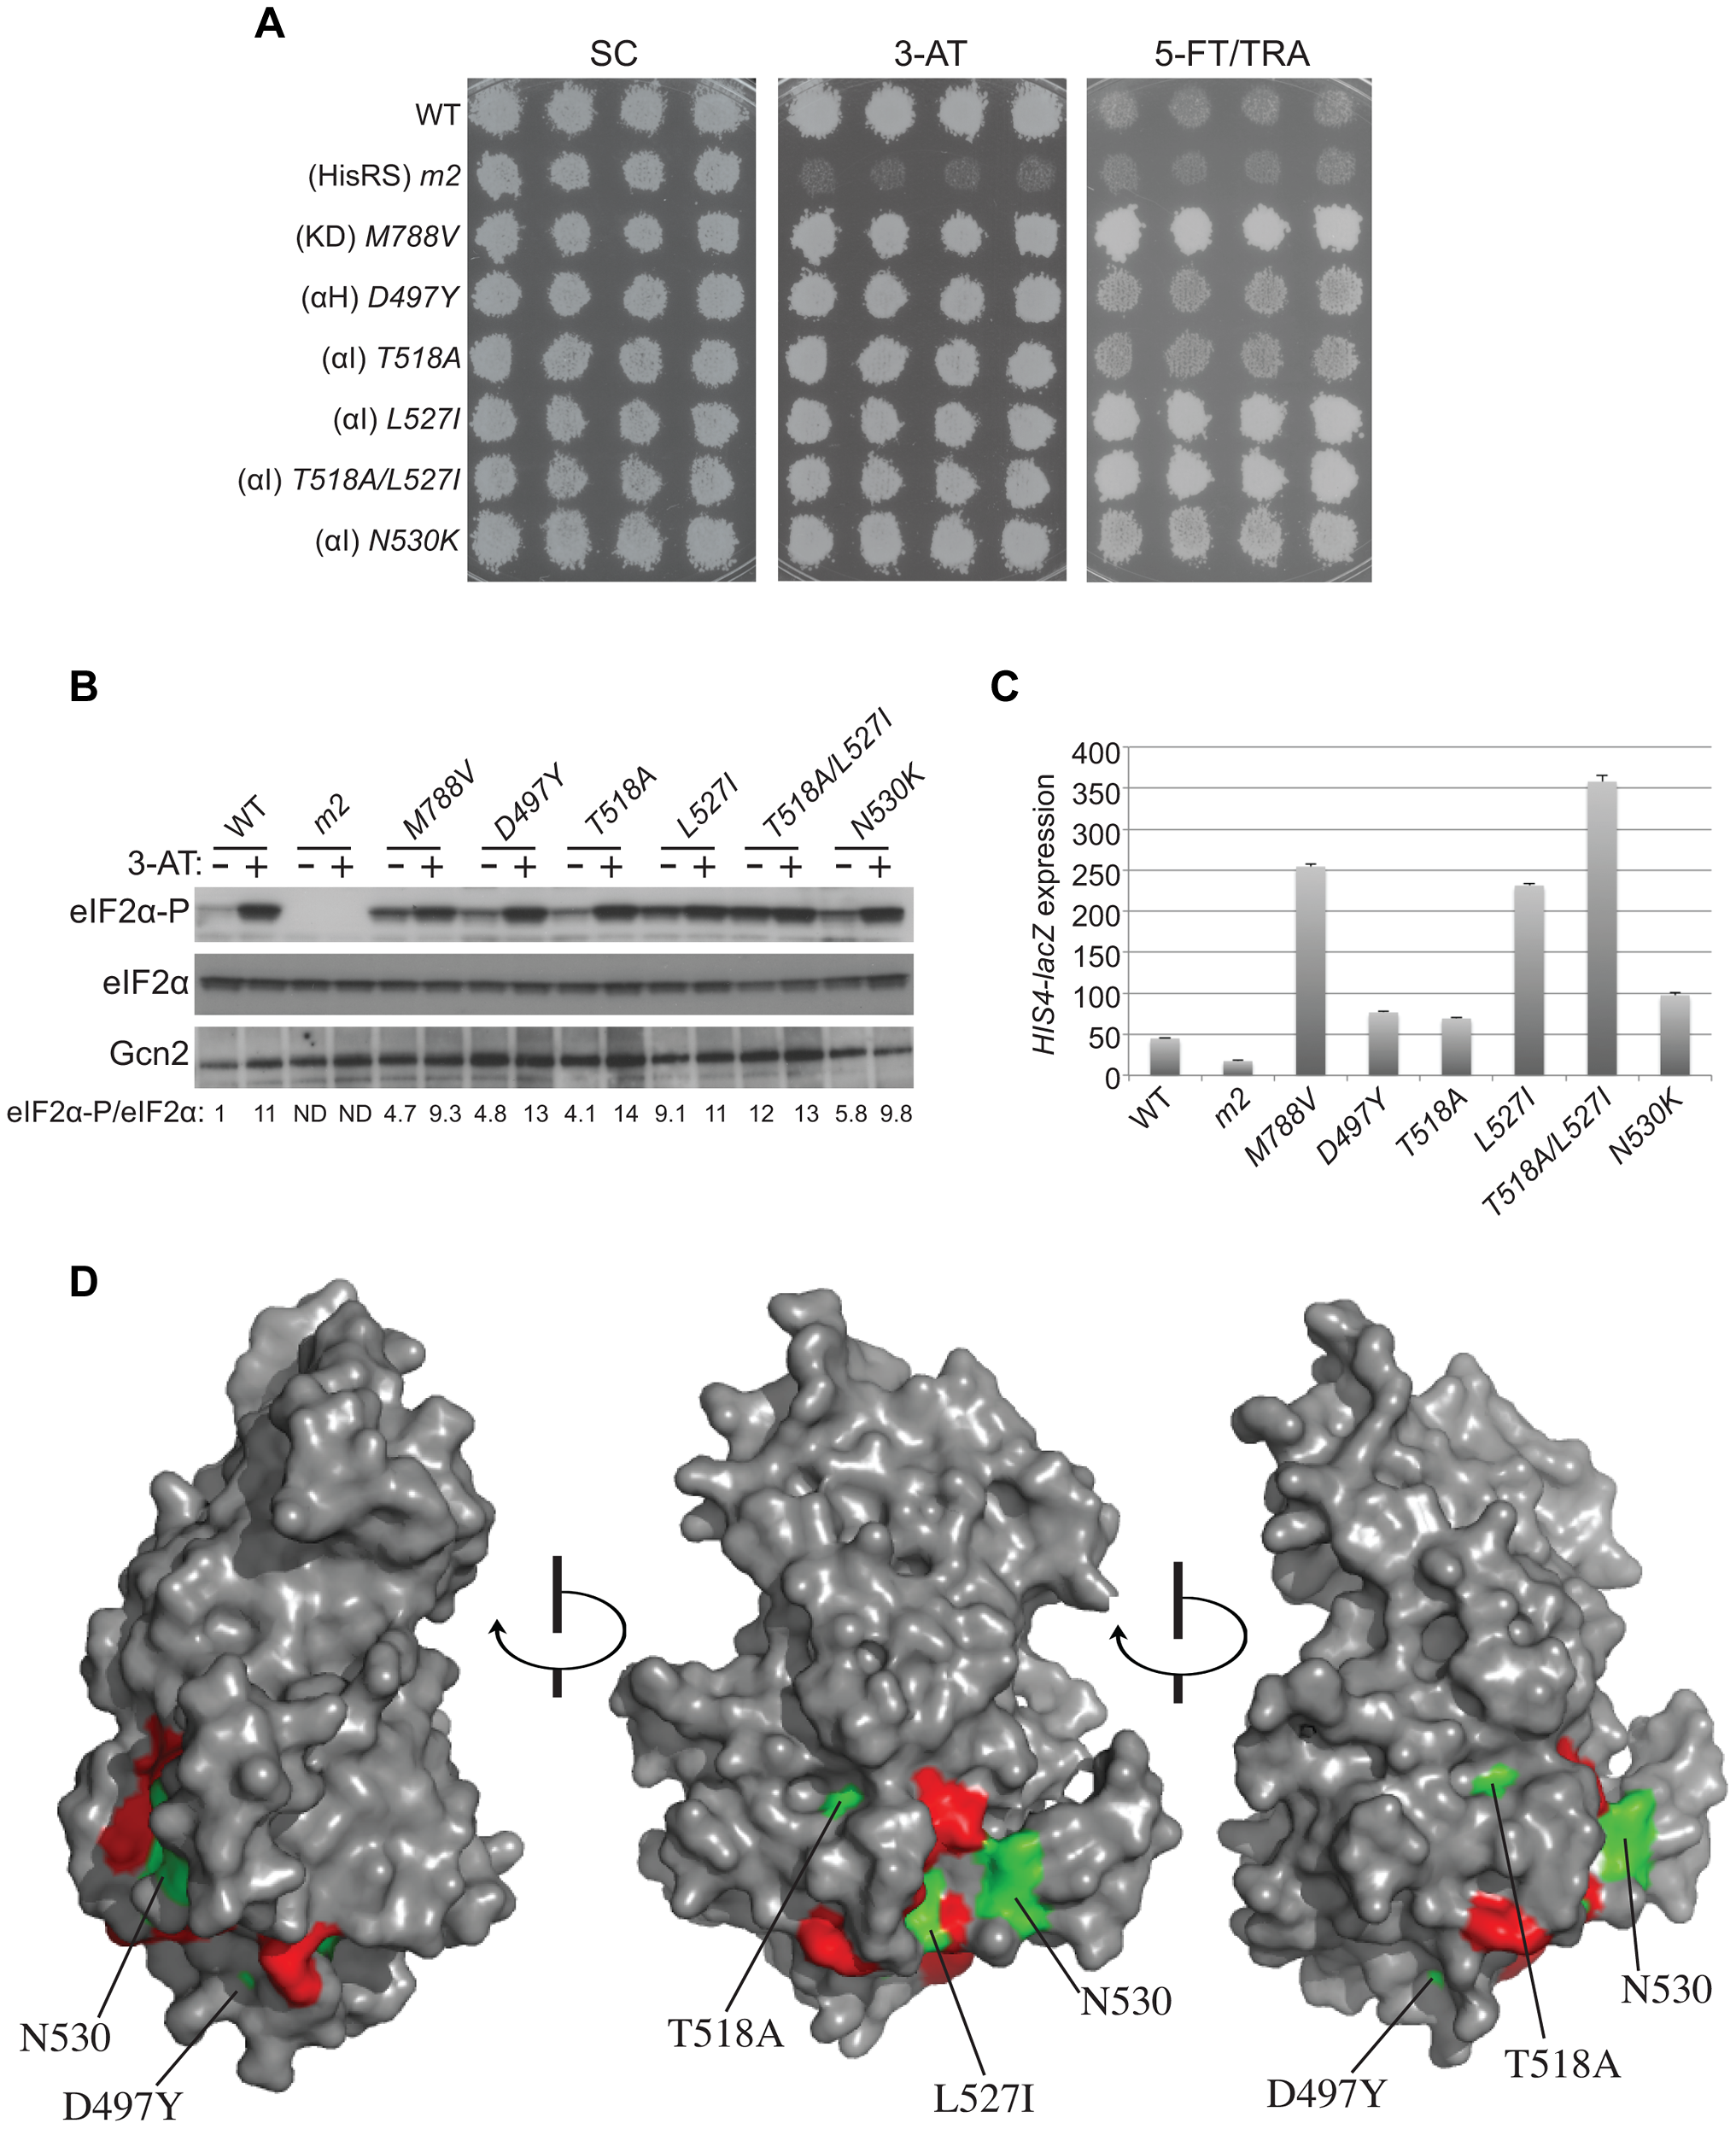 Mutations in the αI helix of the YKD constitutively activates Gcn2 <i>in vivo</i>.